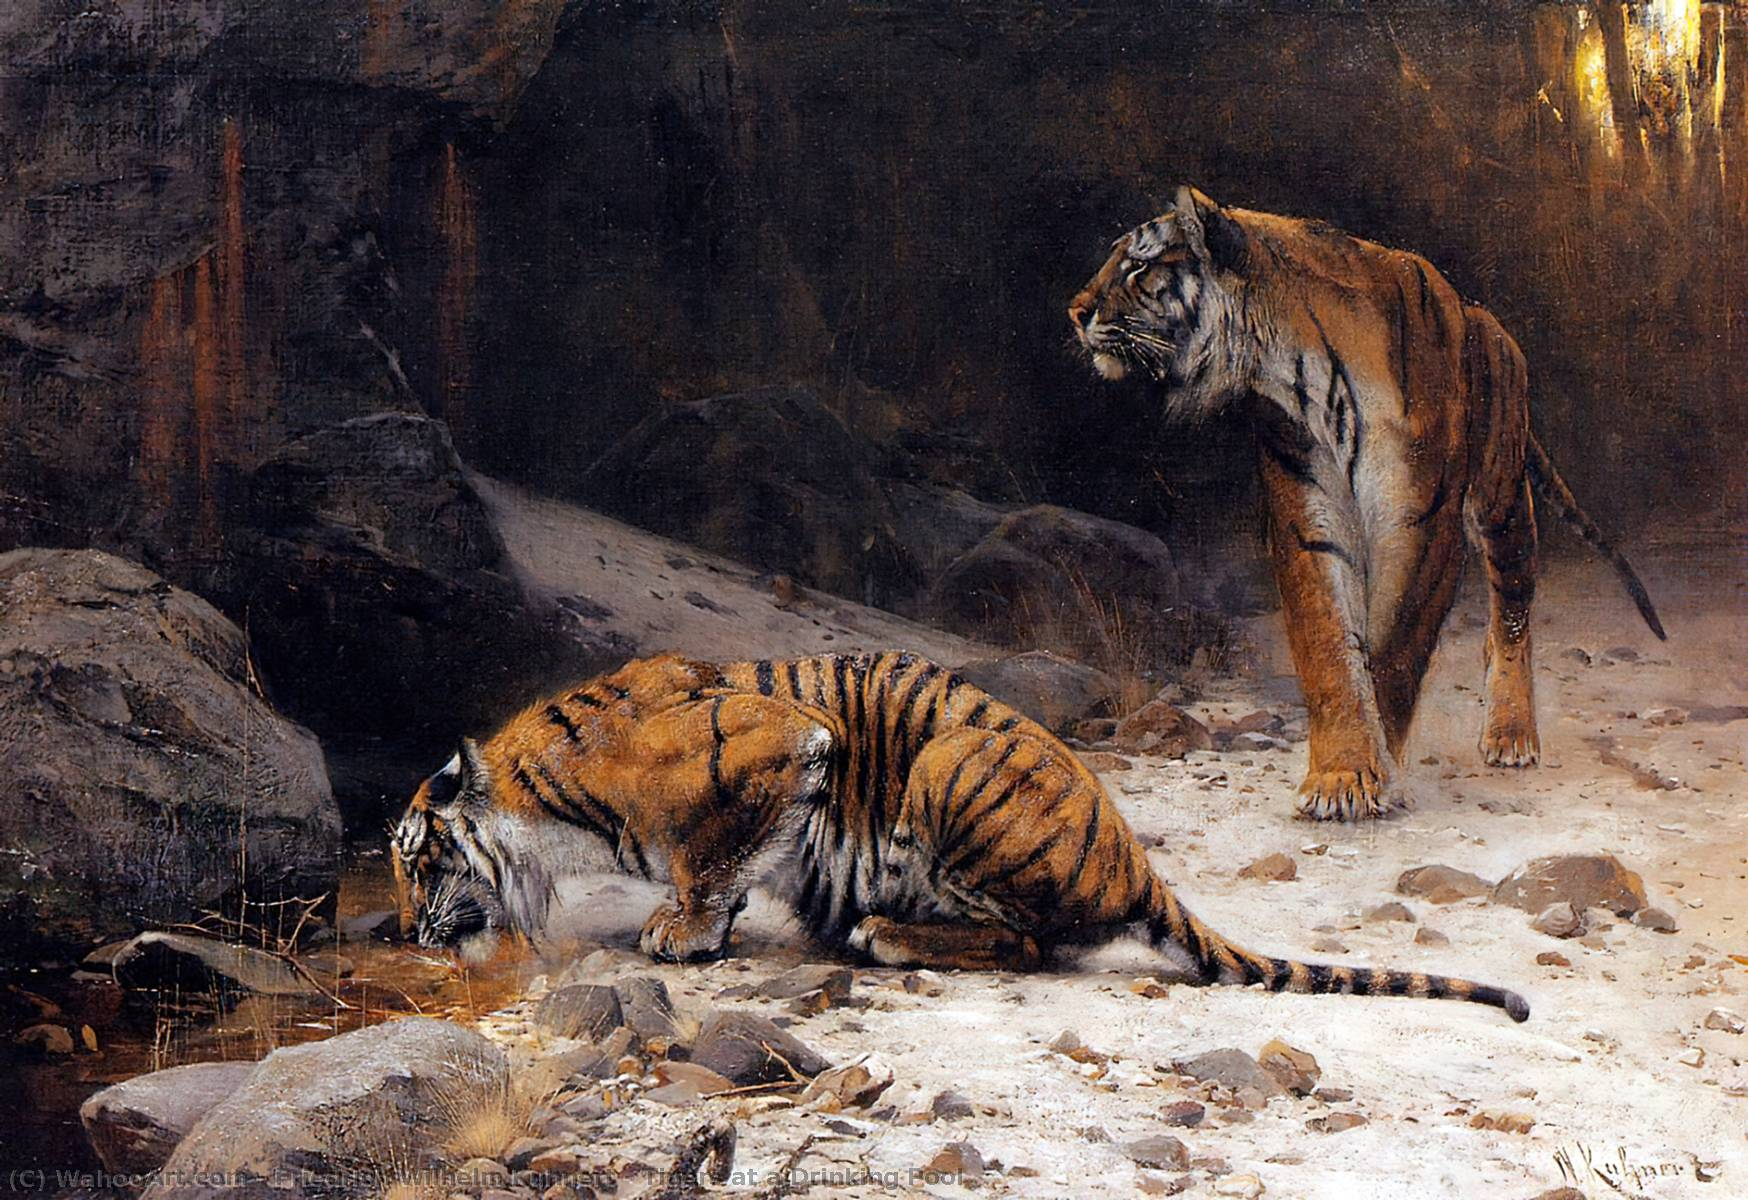 Tigers at a Drinking Pool by Friedrich Wilhelm Kuhnert (1865-1926, Poland) | Art Reproductions Friedrich Wilhelm Kuhnert | WahooArt.com